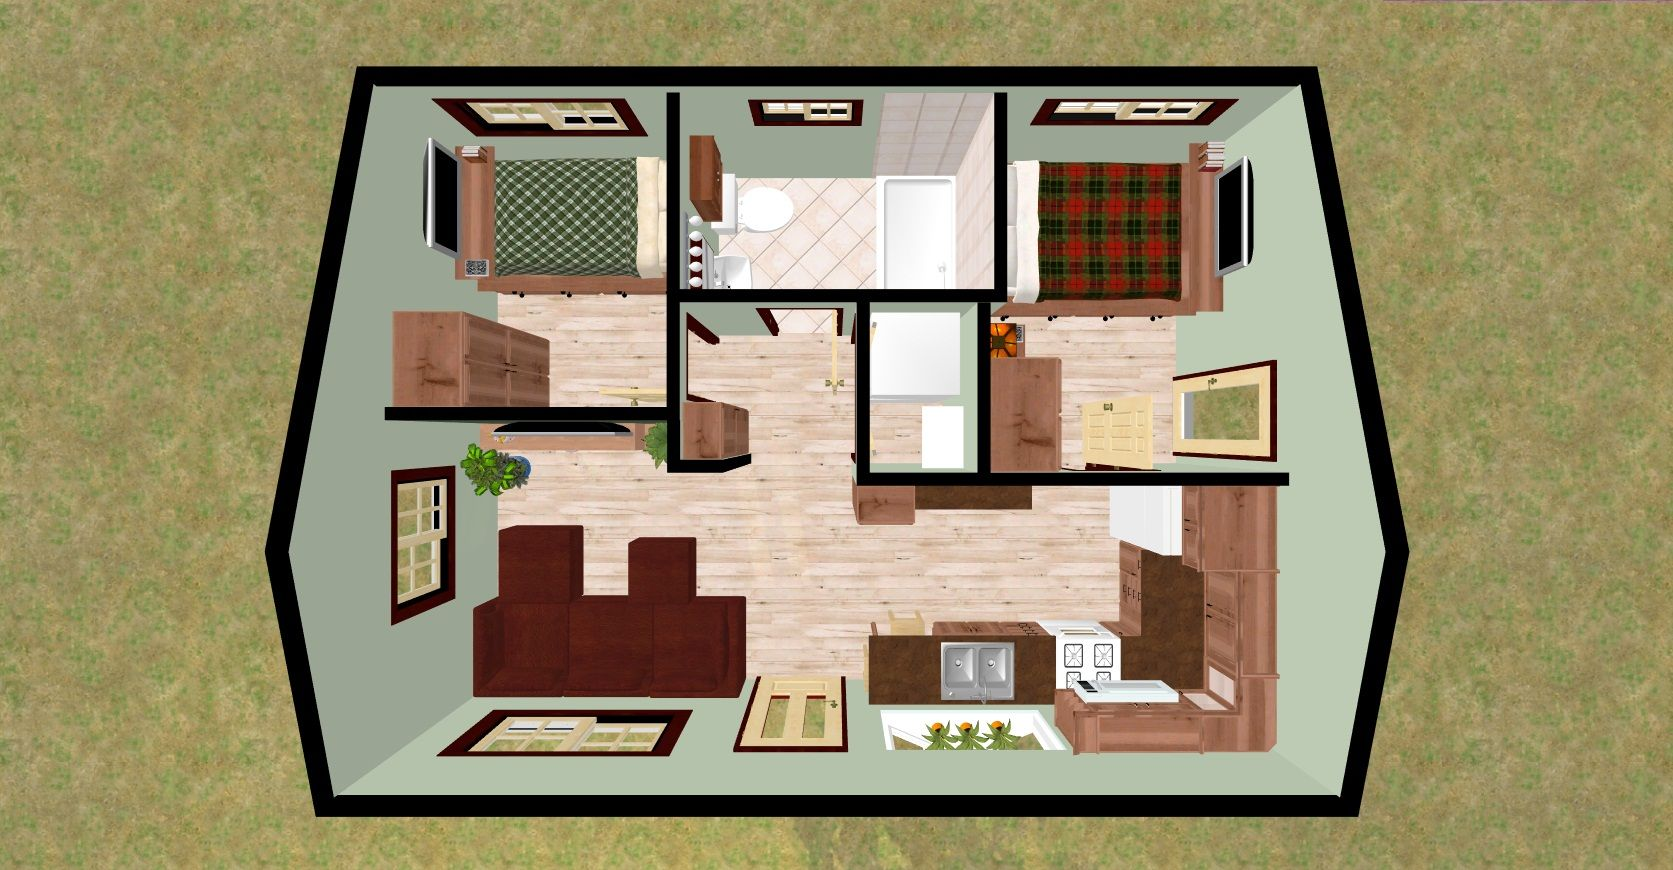 Cozyhomeplanscom 432 Sq Ft Small House Firefly 3D Top